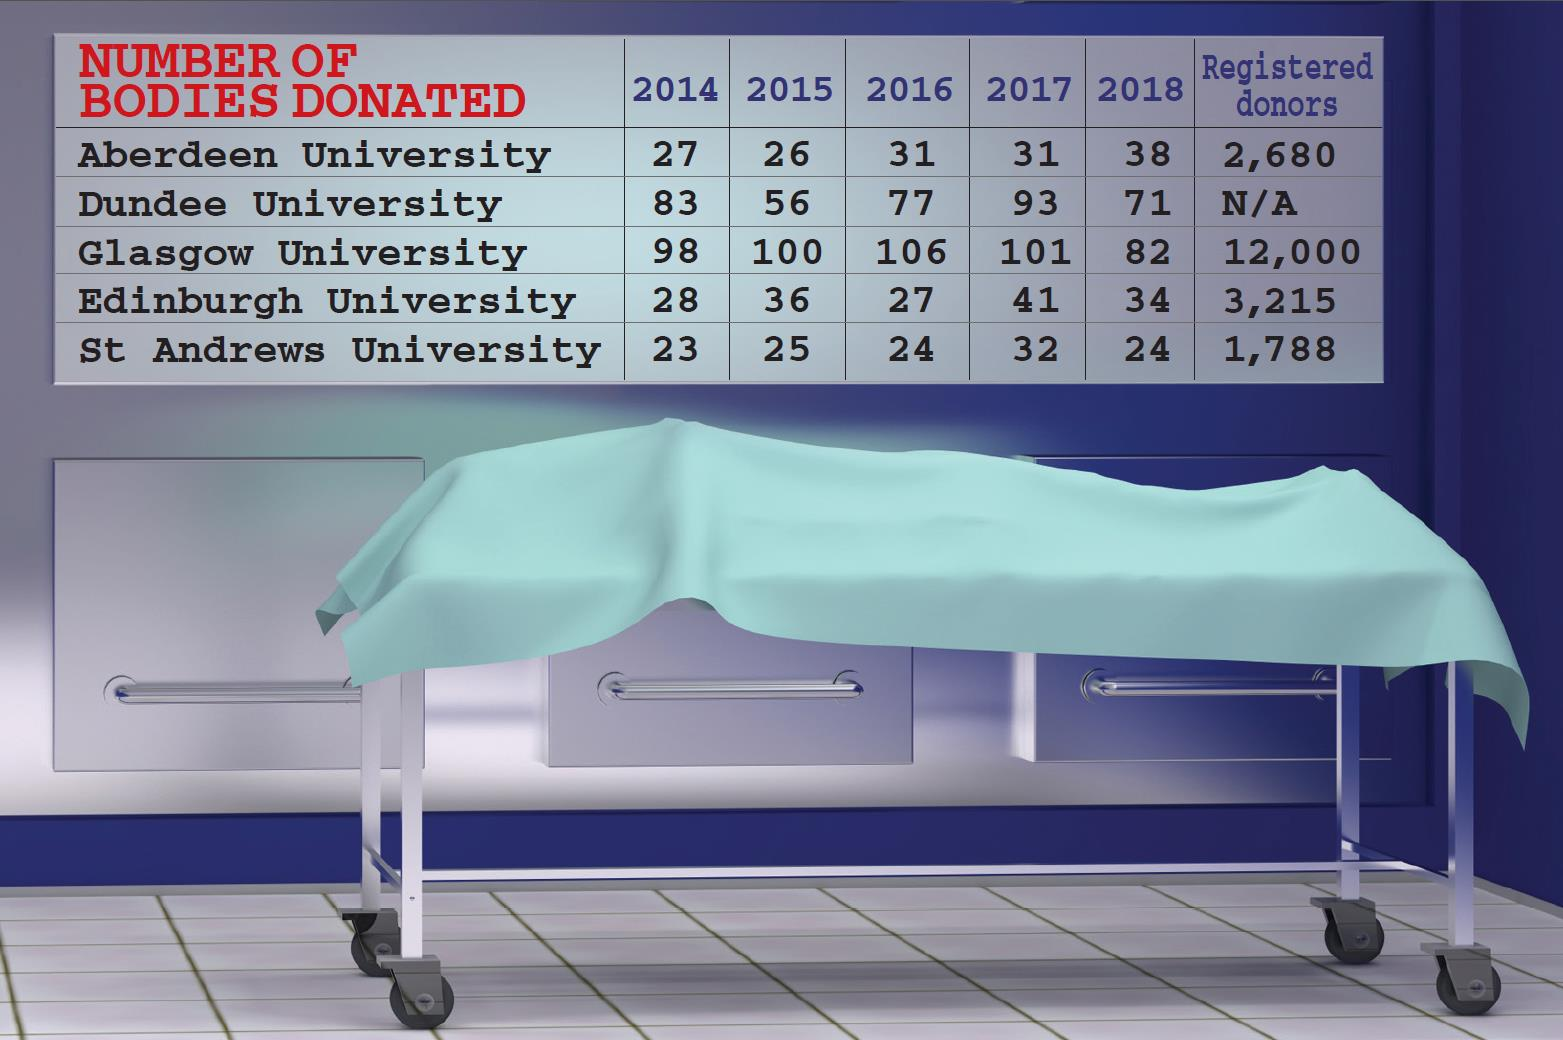 The numbers of cadavers received by each university over the last five years and the number of people currently registered to donate their bodies upon their death